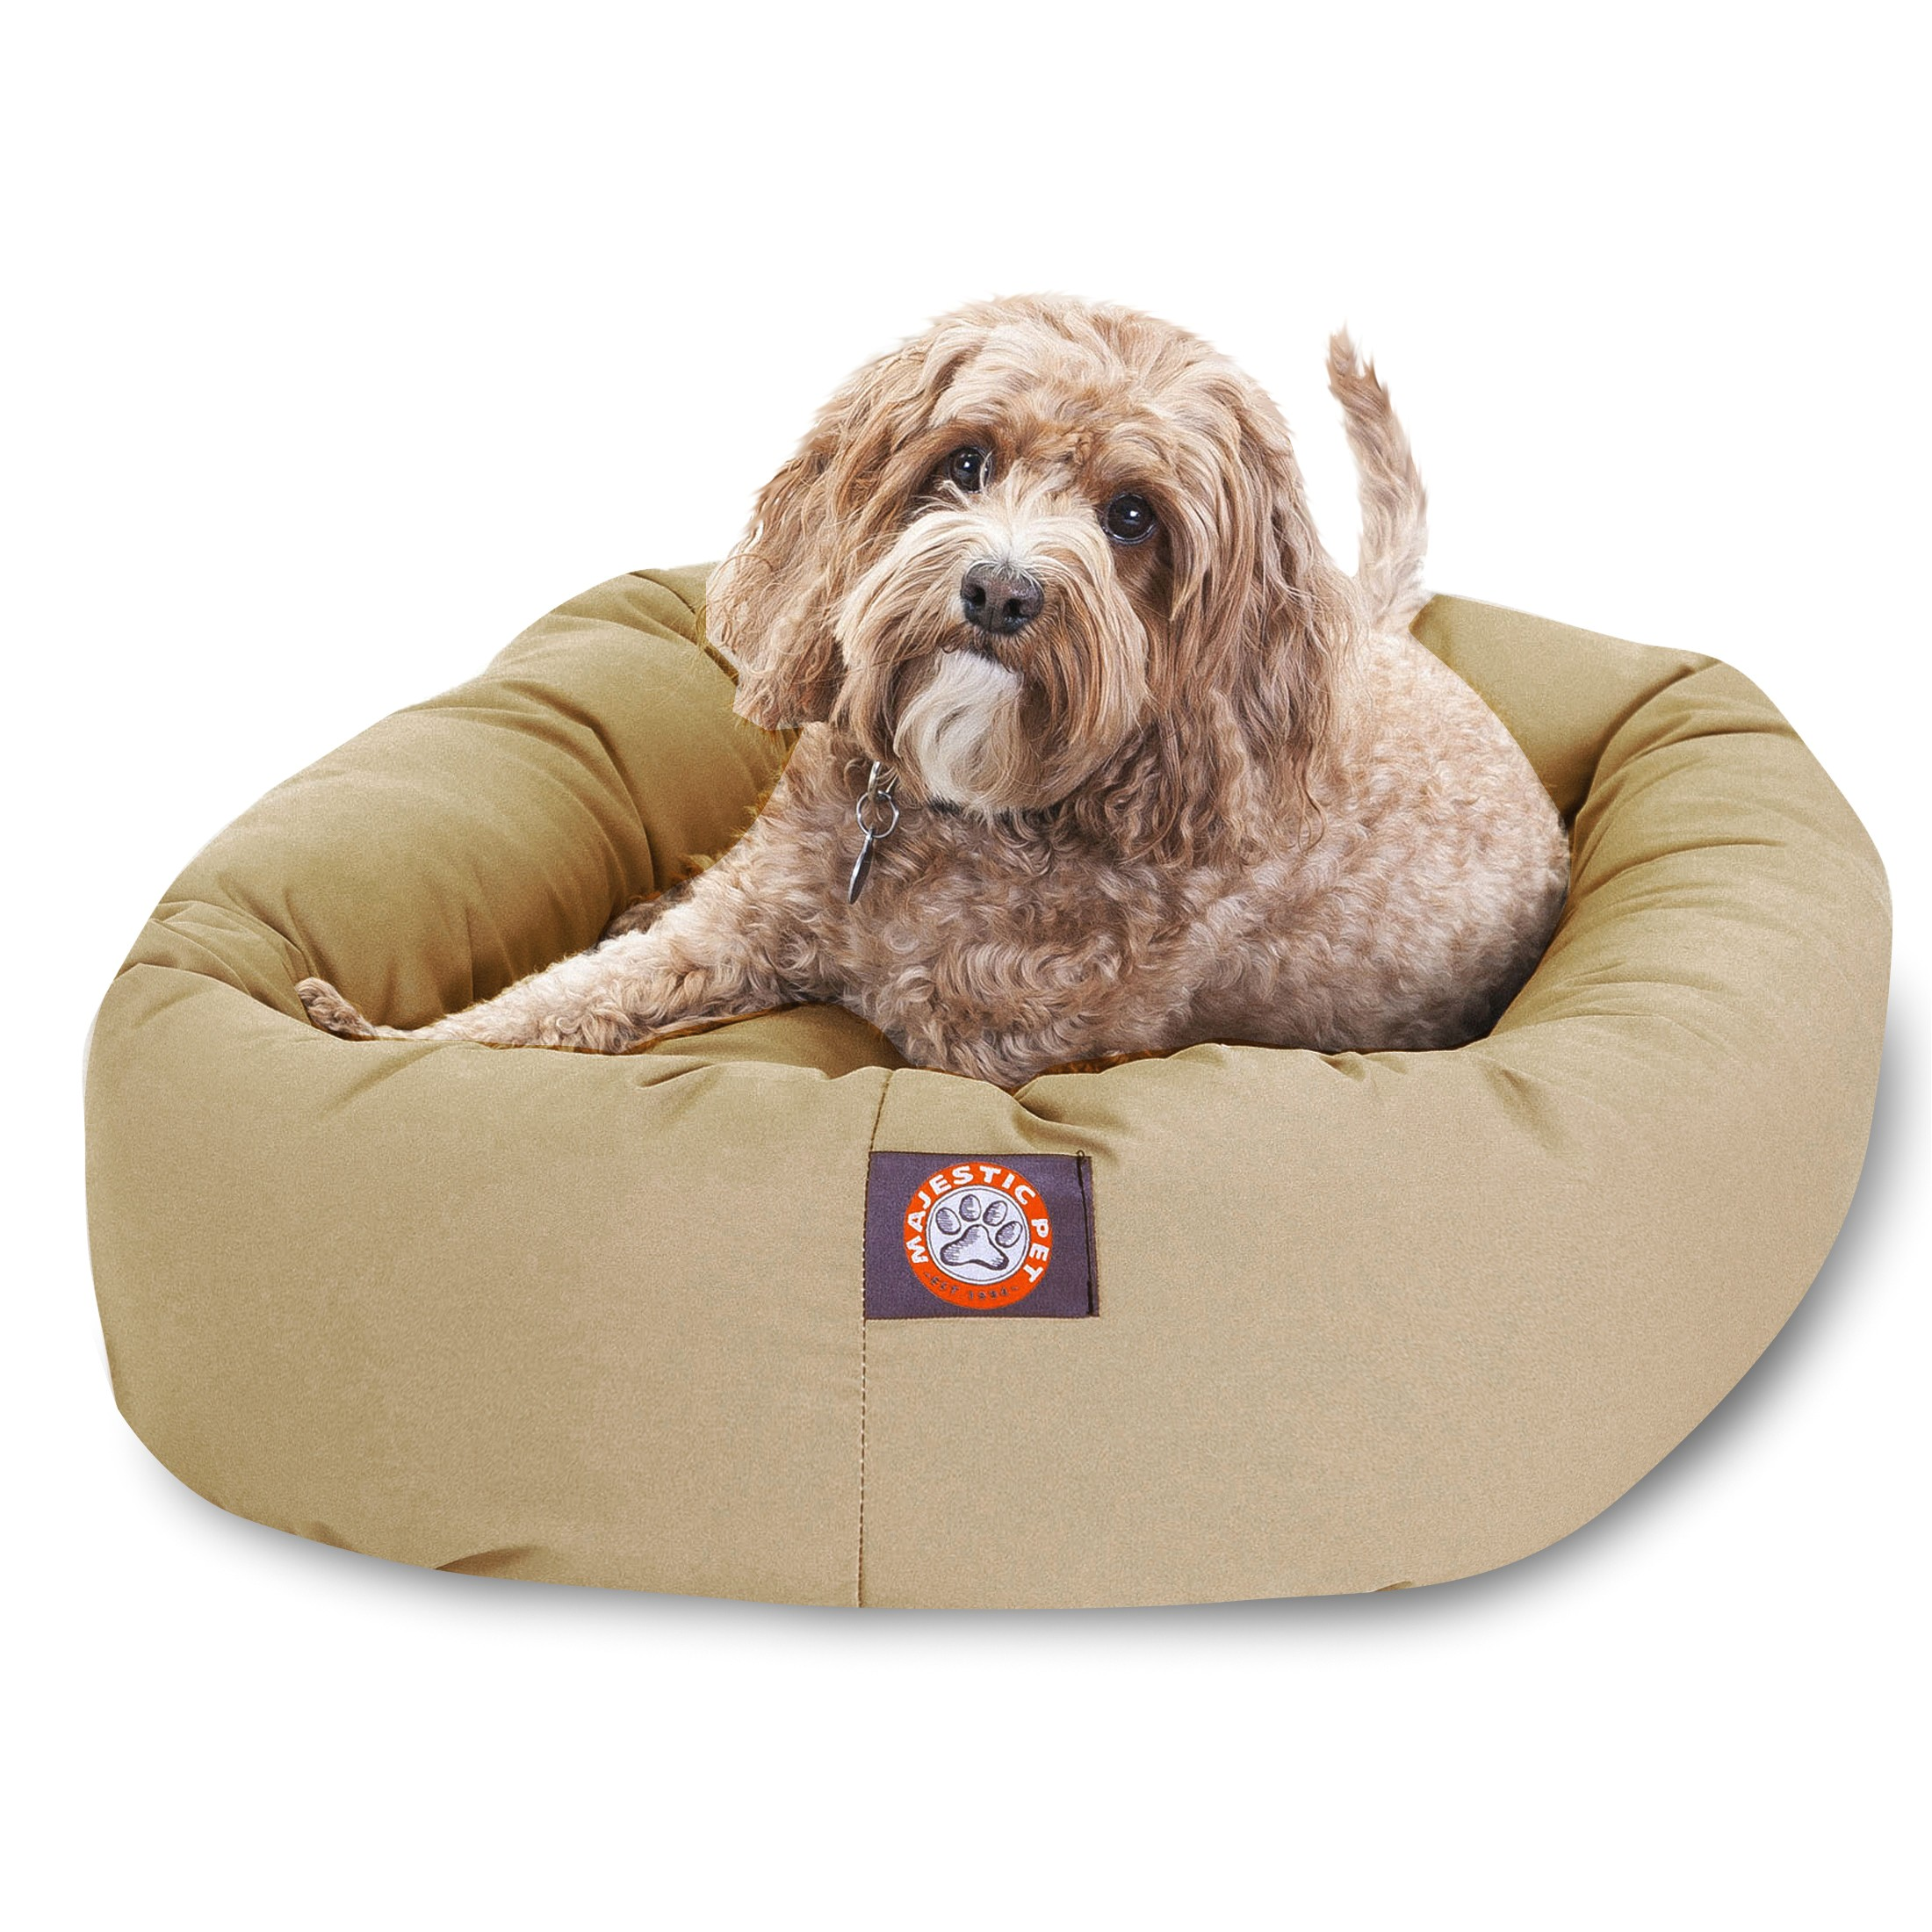 tips chew proof dog bed orvis chew proof dog bed dog beds ec6146154ccfbde8